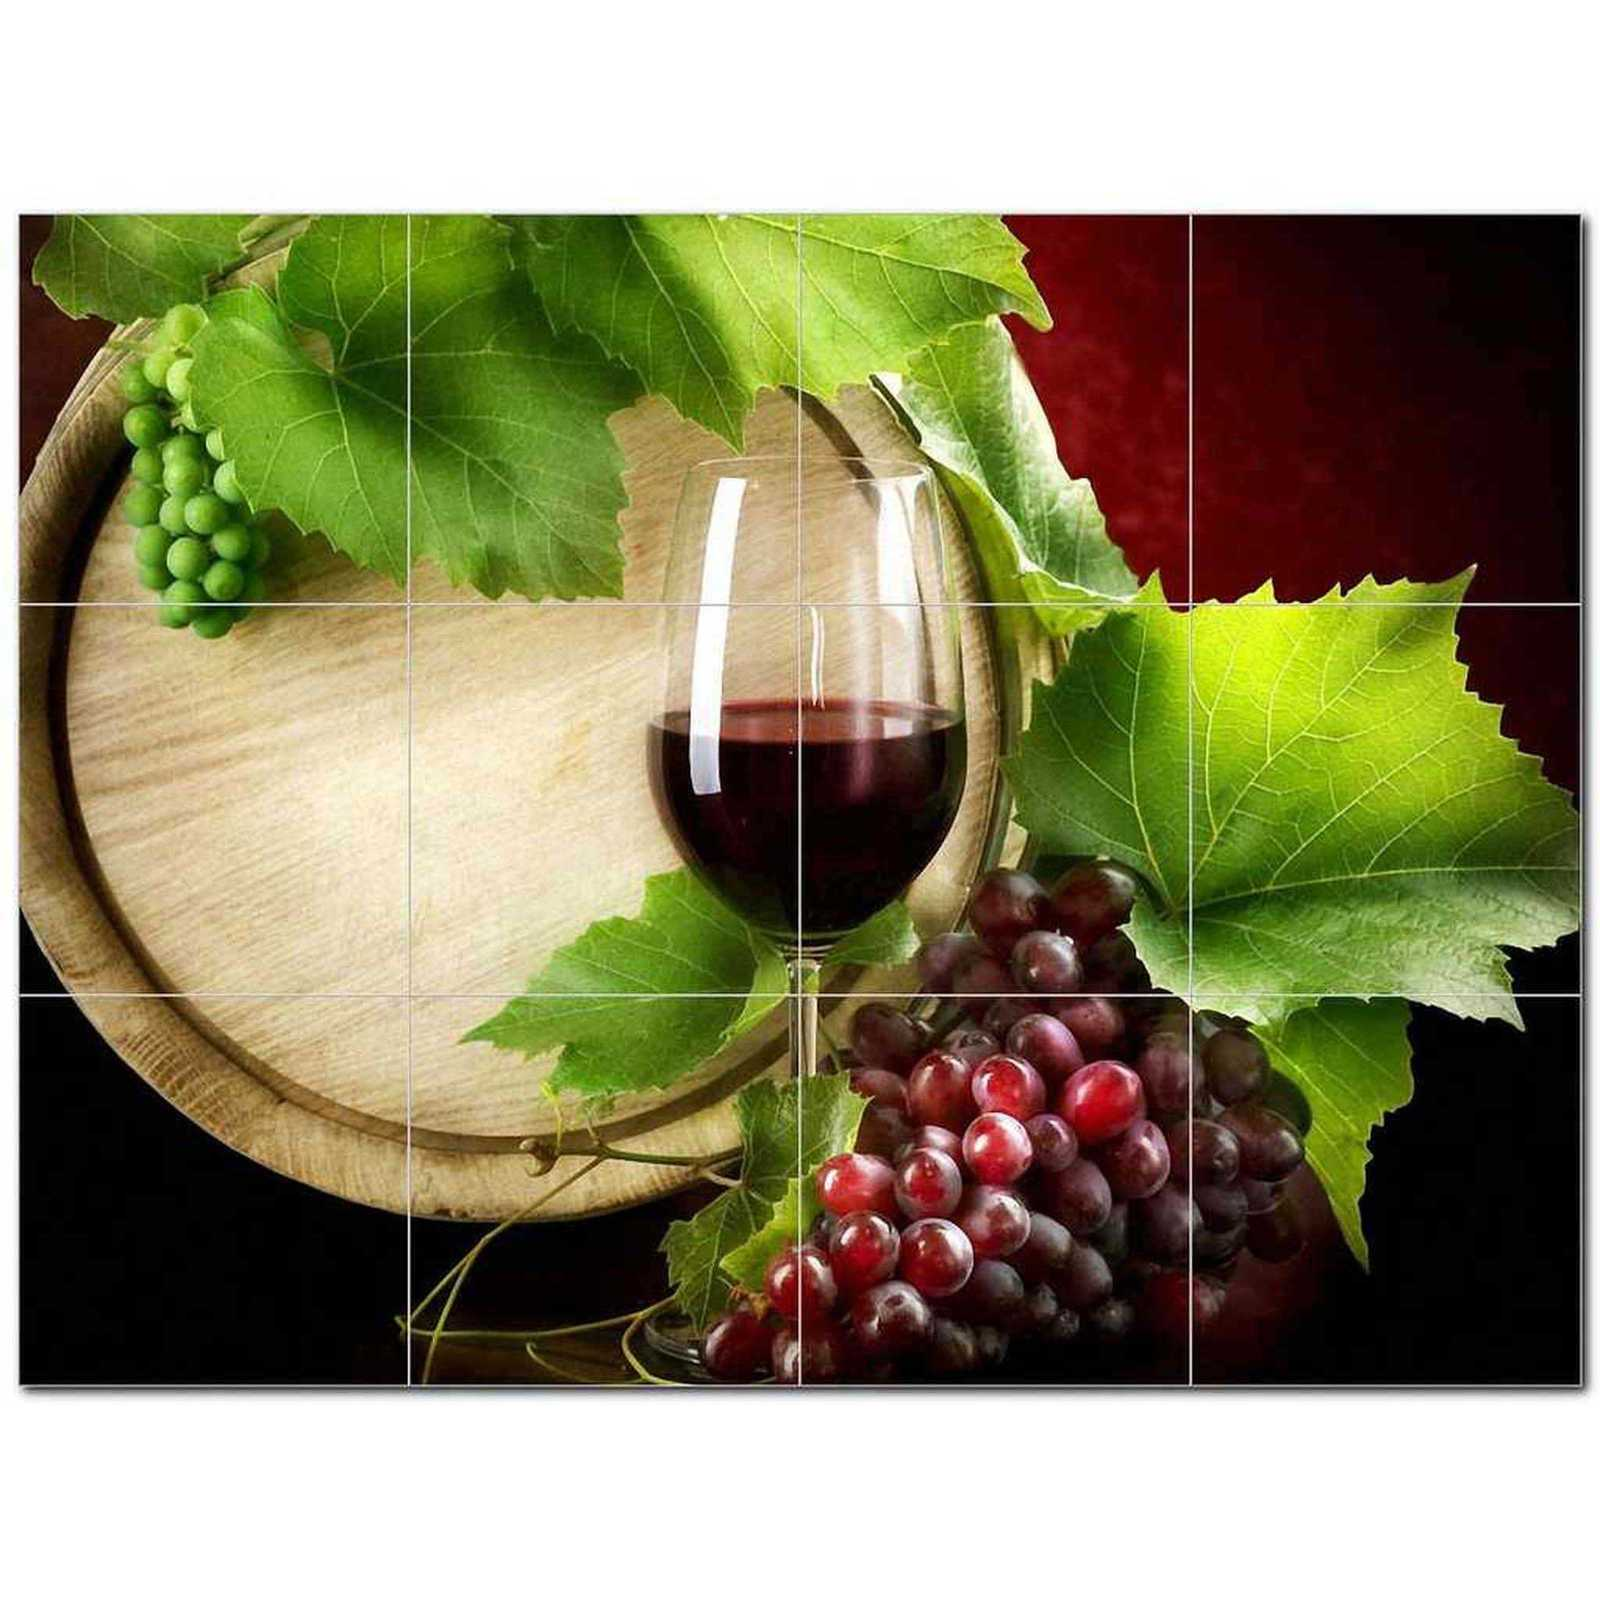 Primary image for Wine Grapes Ceramic Tile Mural Kitchen Backsplash Bathroom Shower BAZ406381